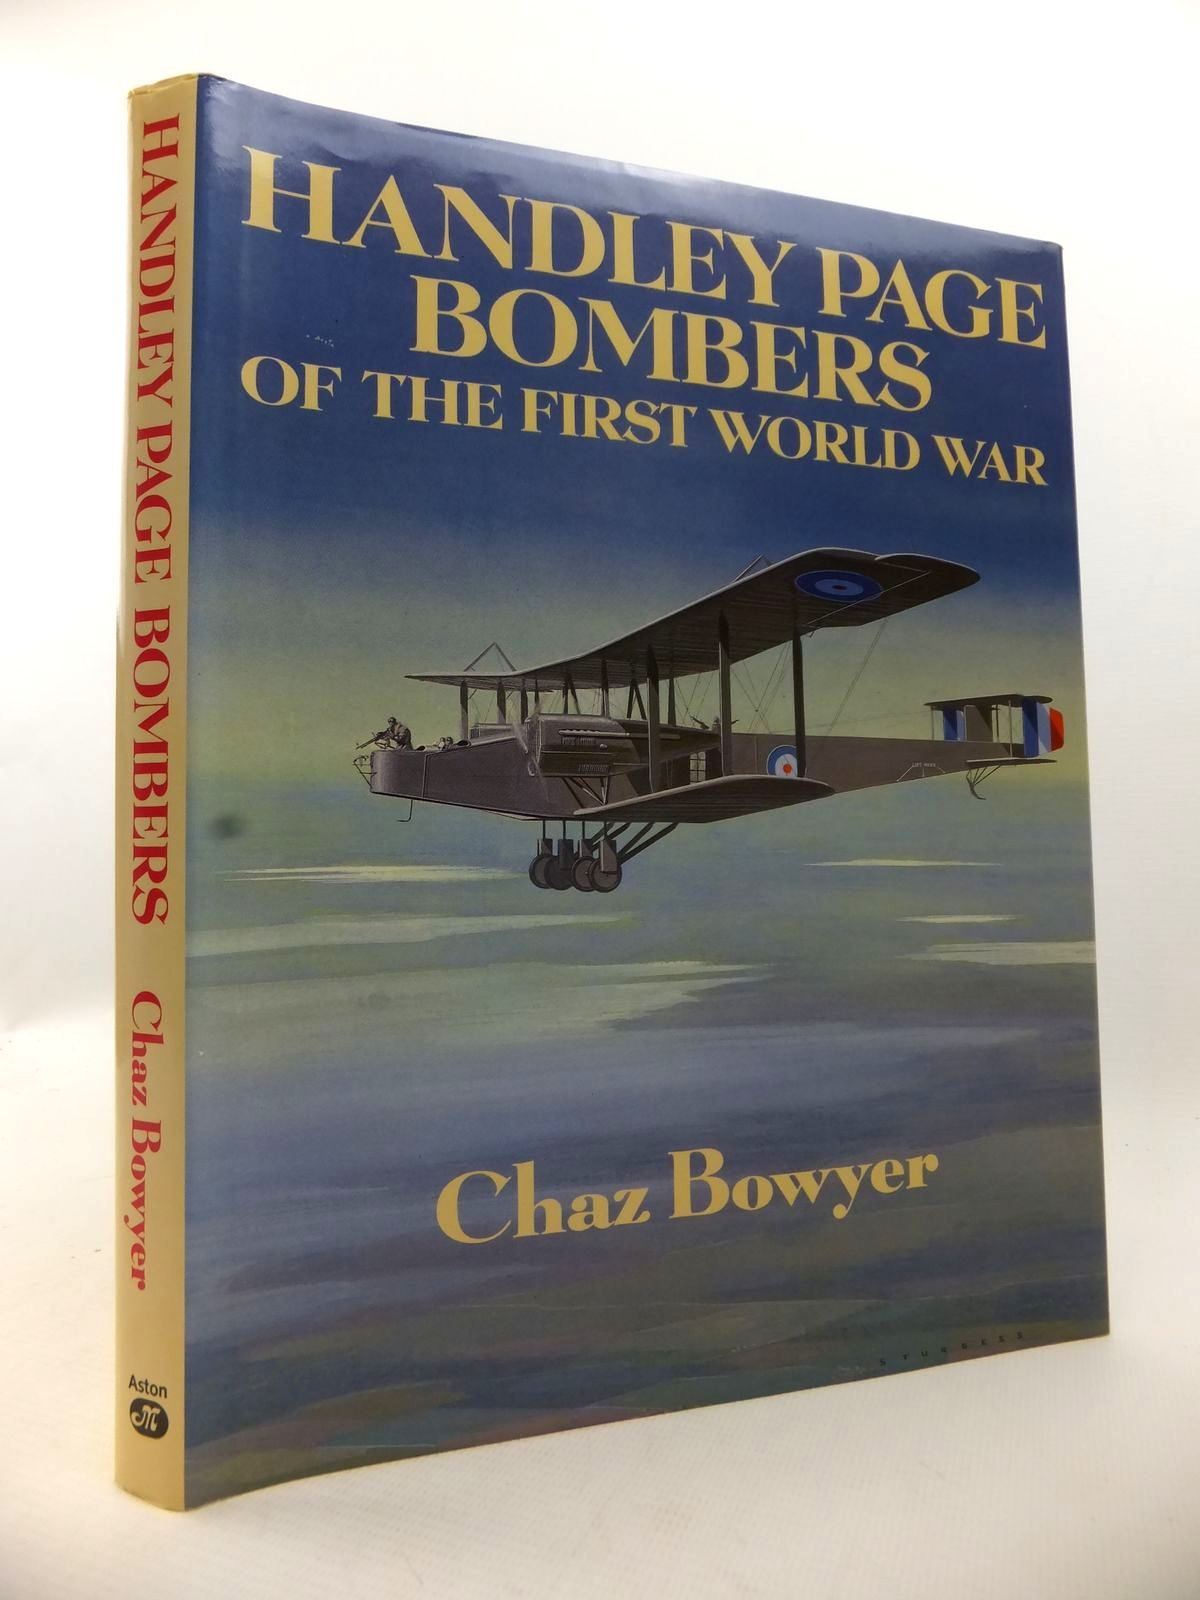 Photo of HANDLEY PAGE BOMBERS OF THE FIRST WORLD WAR written by Bowyer, Chaz published by Aston Publications (STOCK CODE: 1813097)  for sale by Stella & Rose's Books